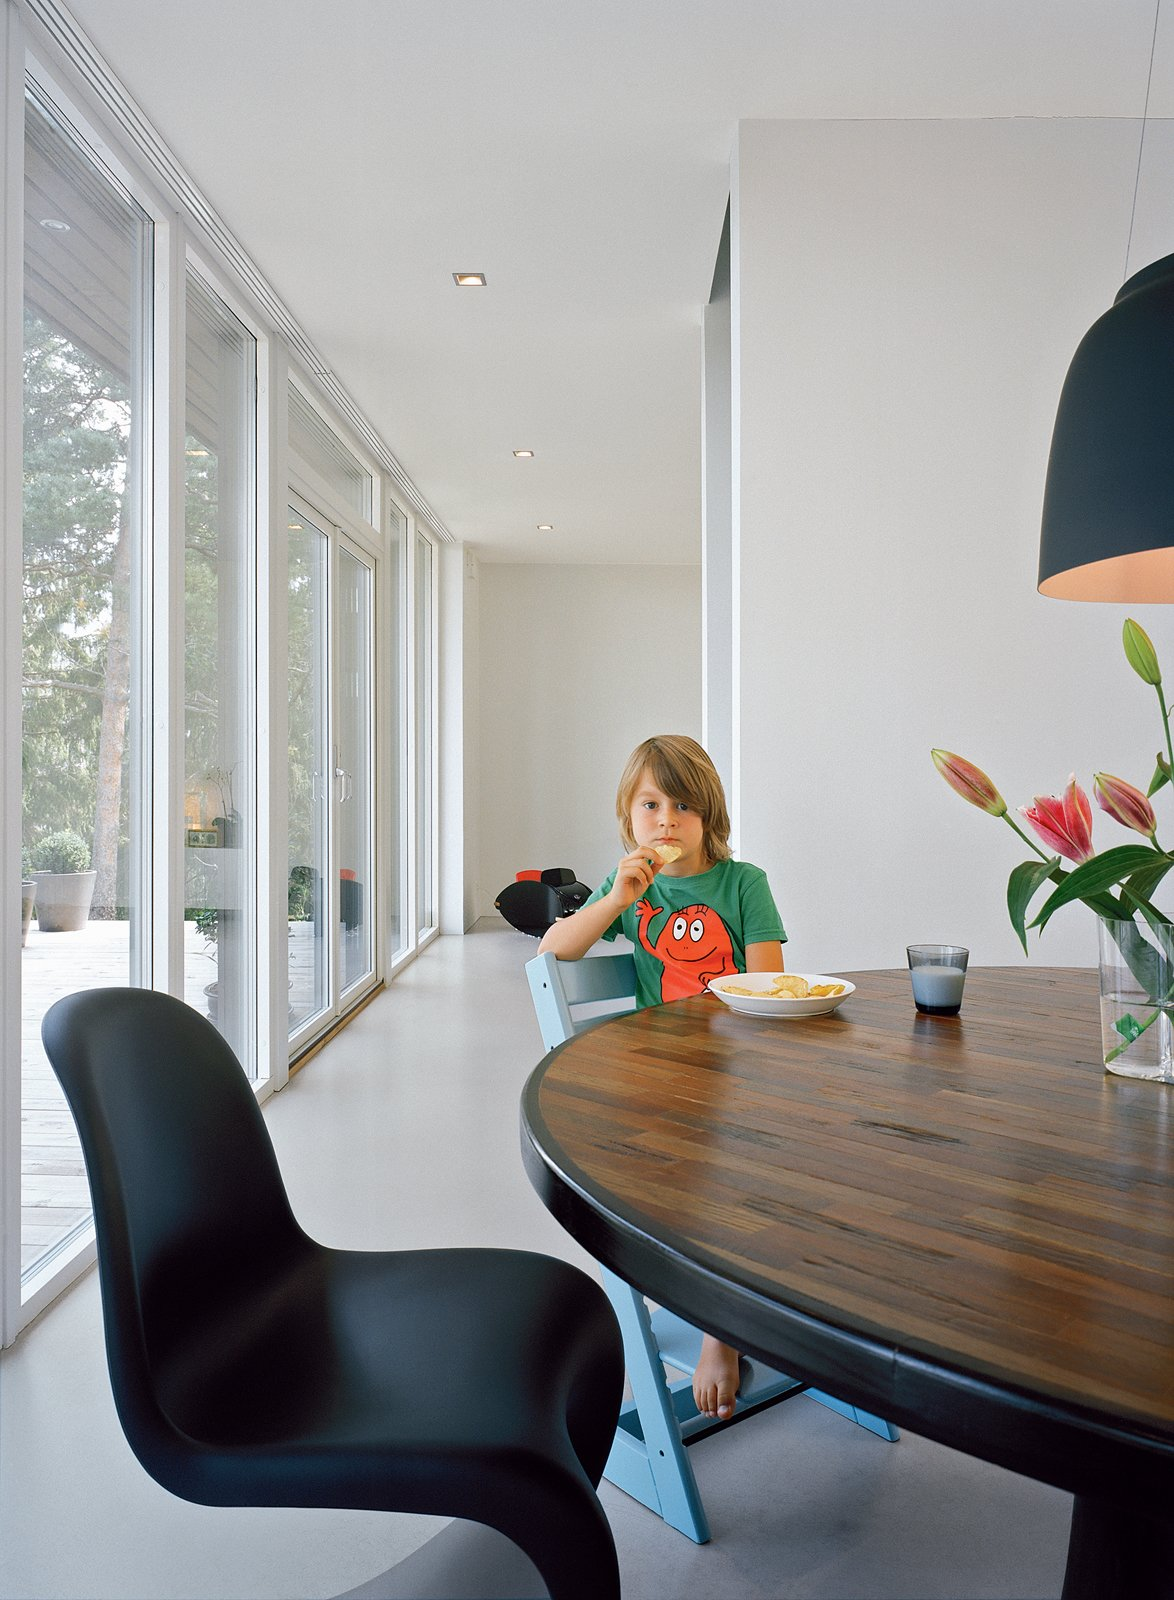 The Bossel family moved into their home a year ago from an apartment in central Stockholm that was half the size.